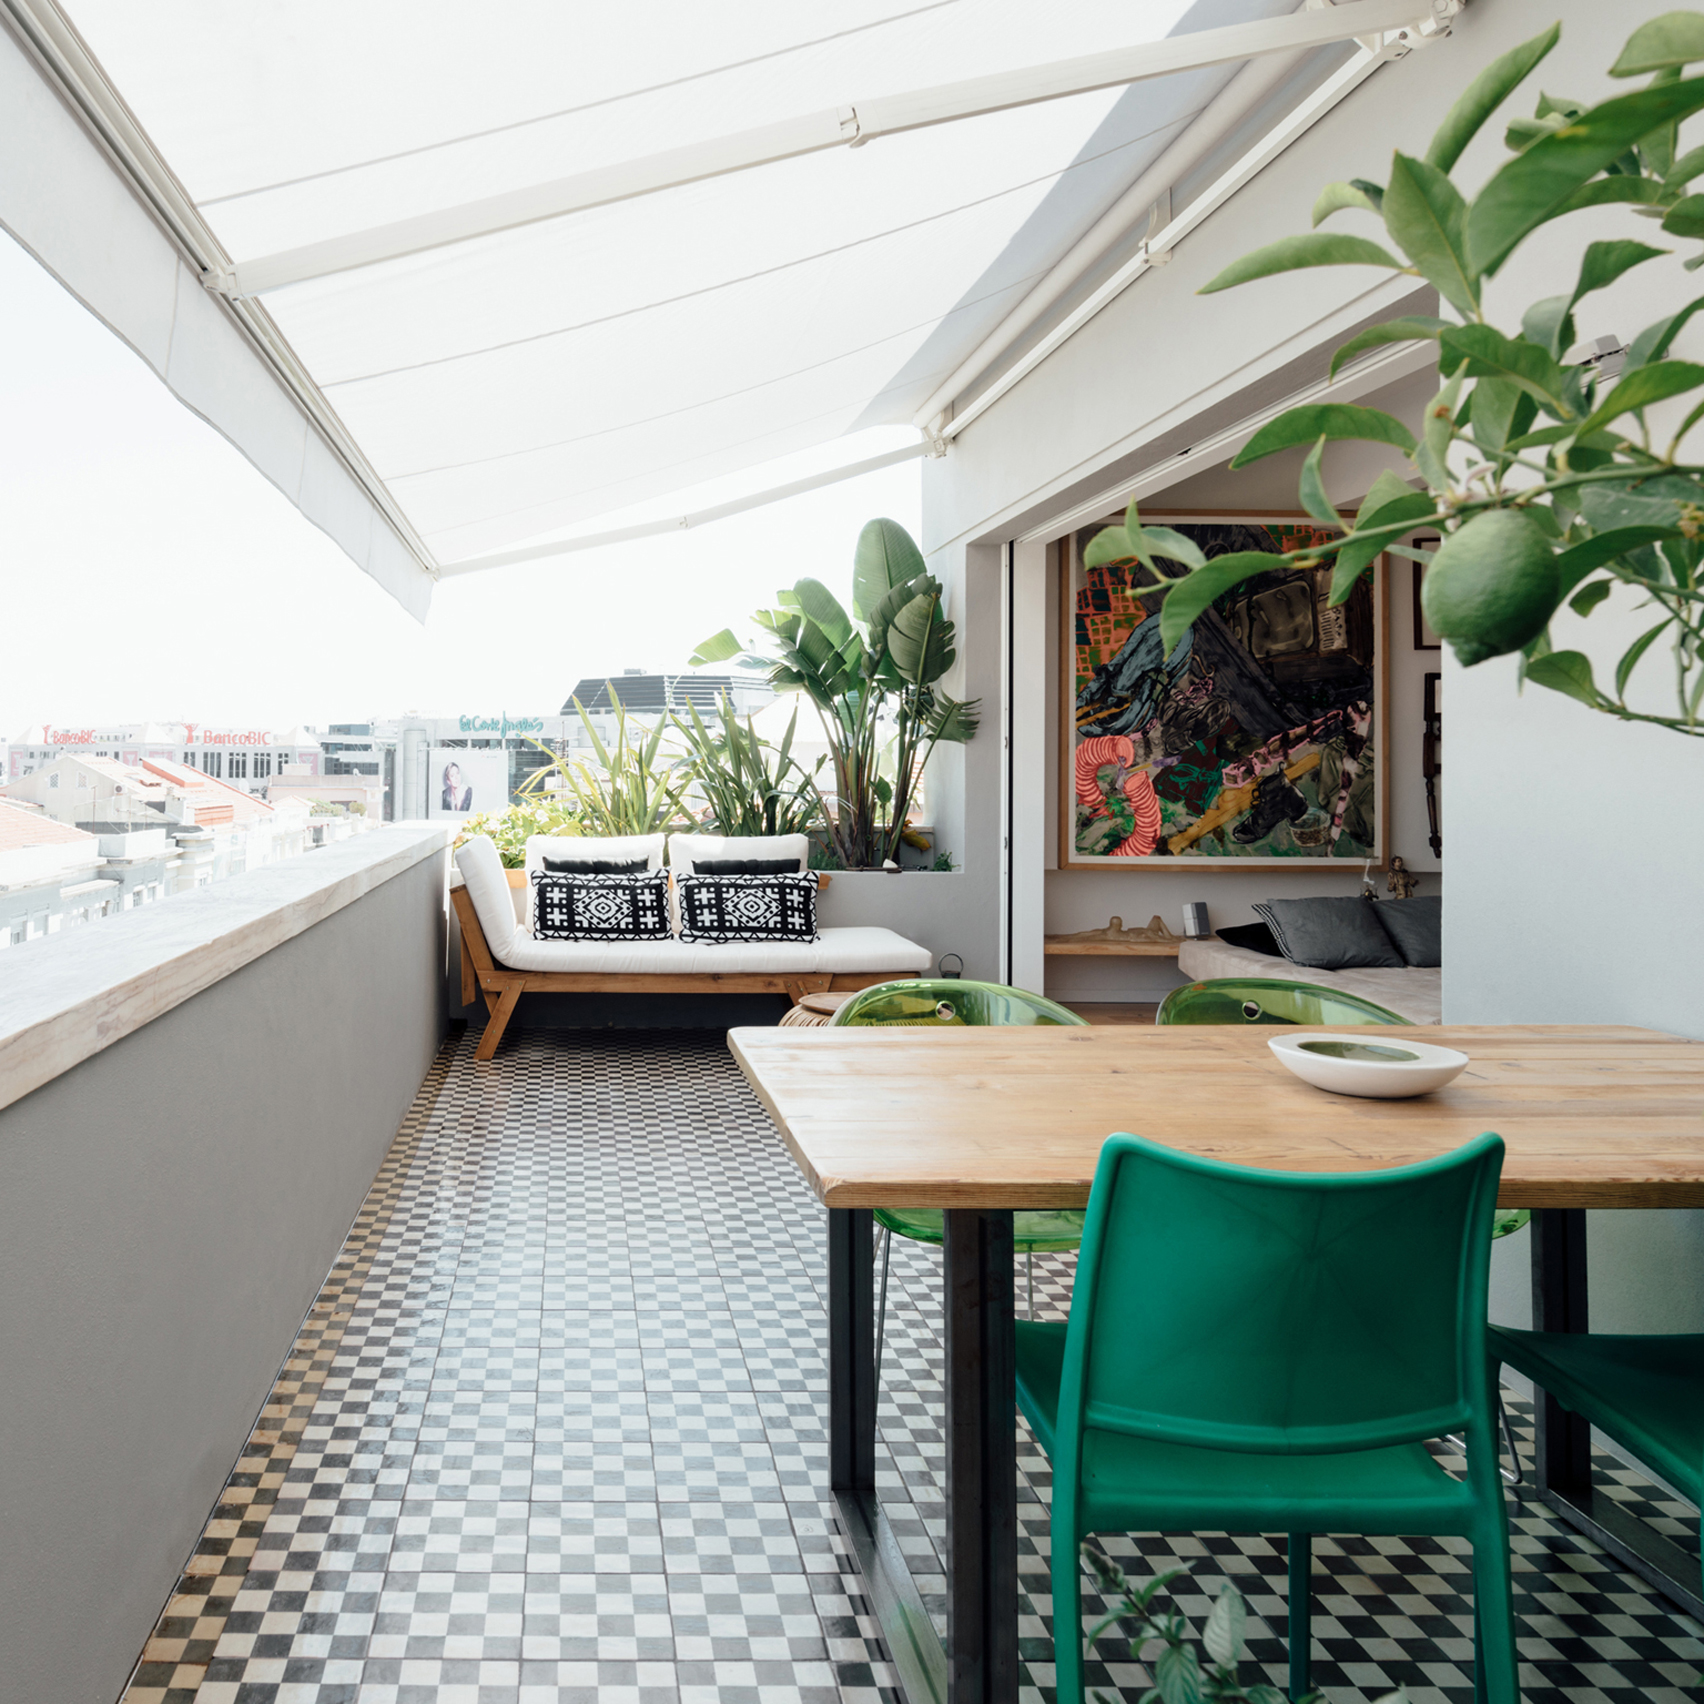 Atelier Data uses light and greenery to transform Lisbon penthouse into  urban oasis